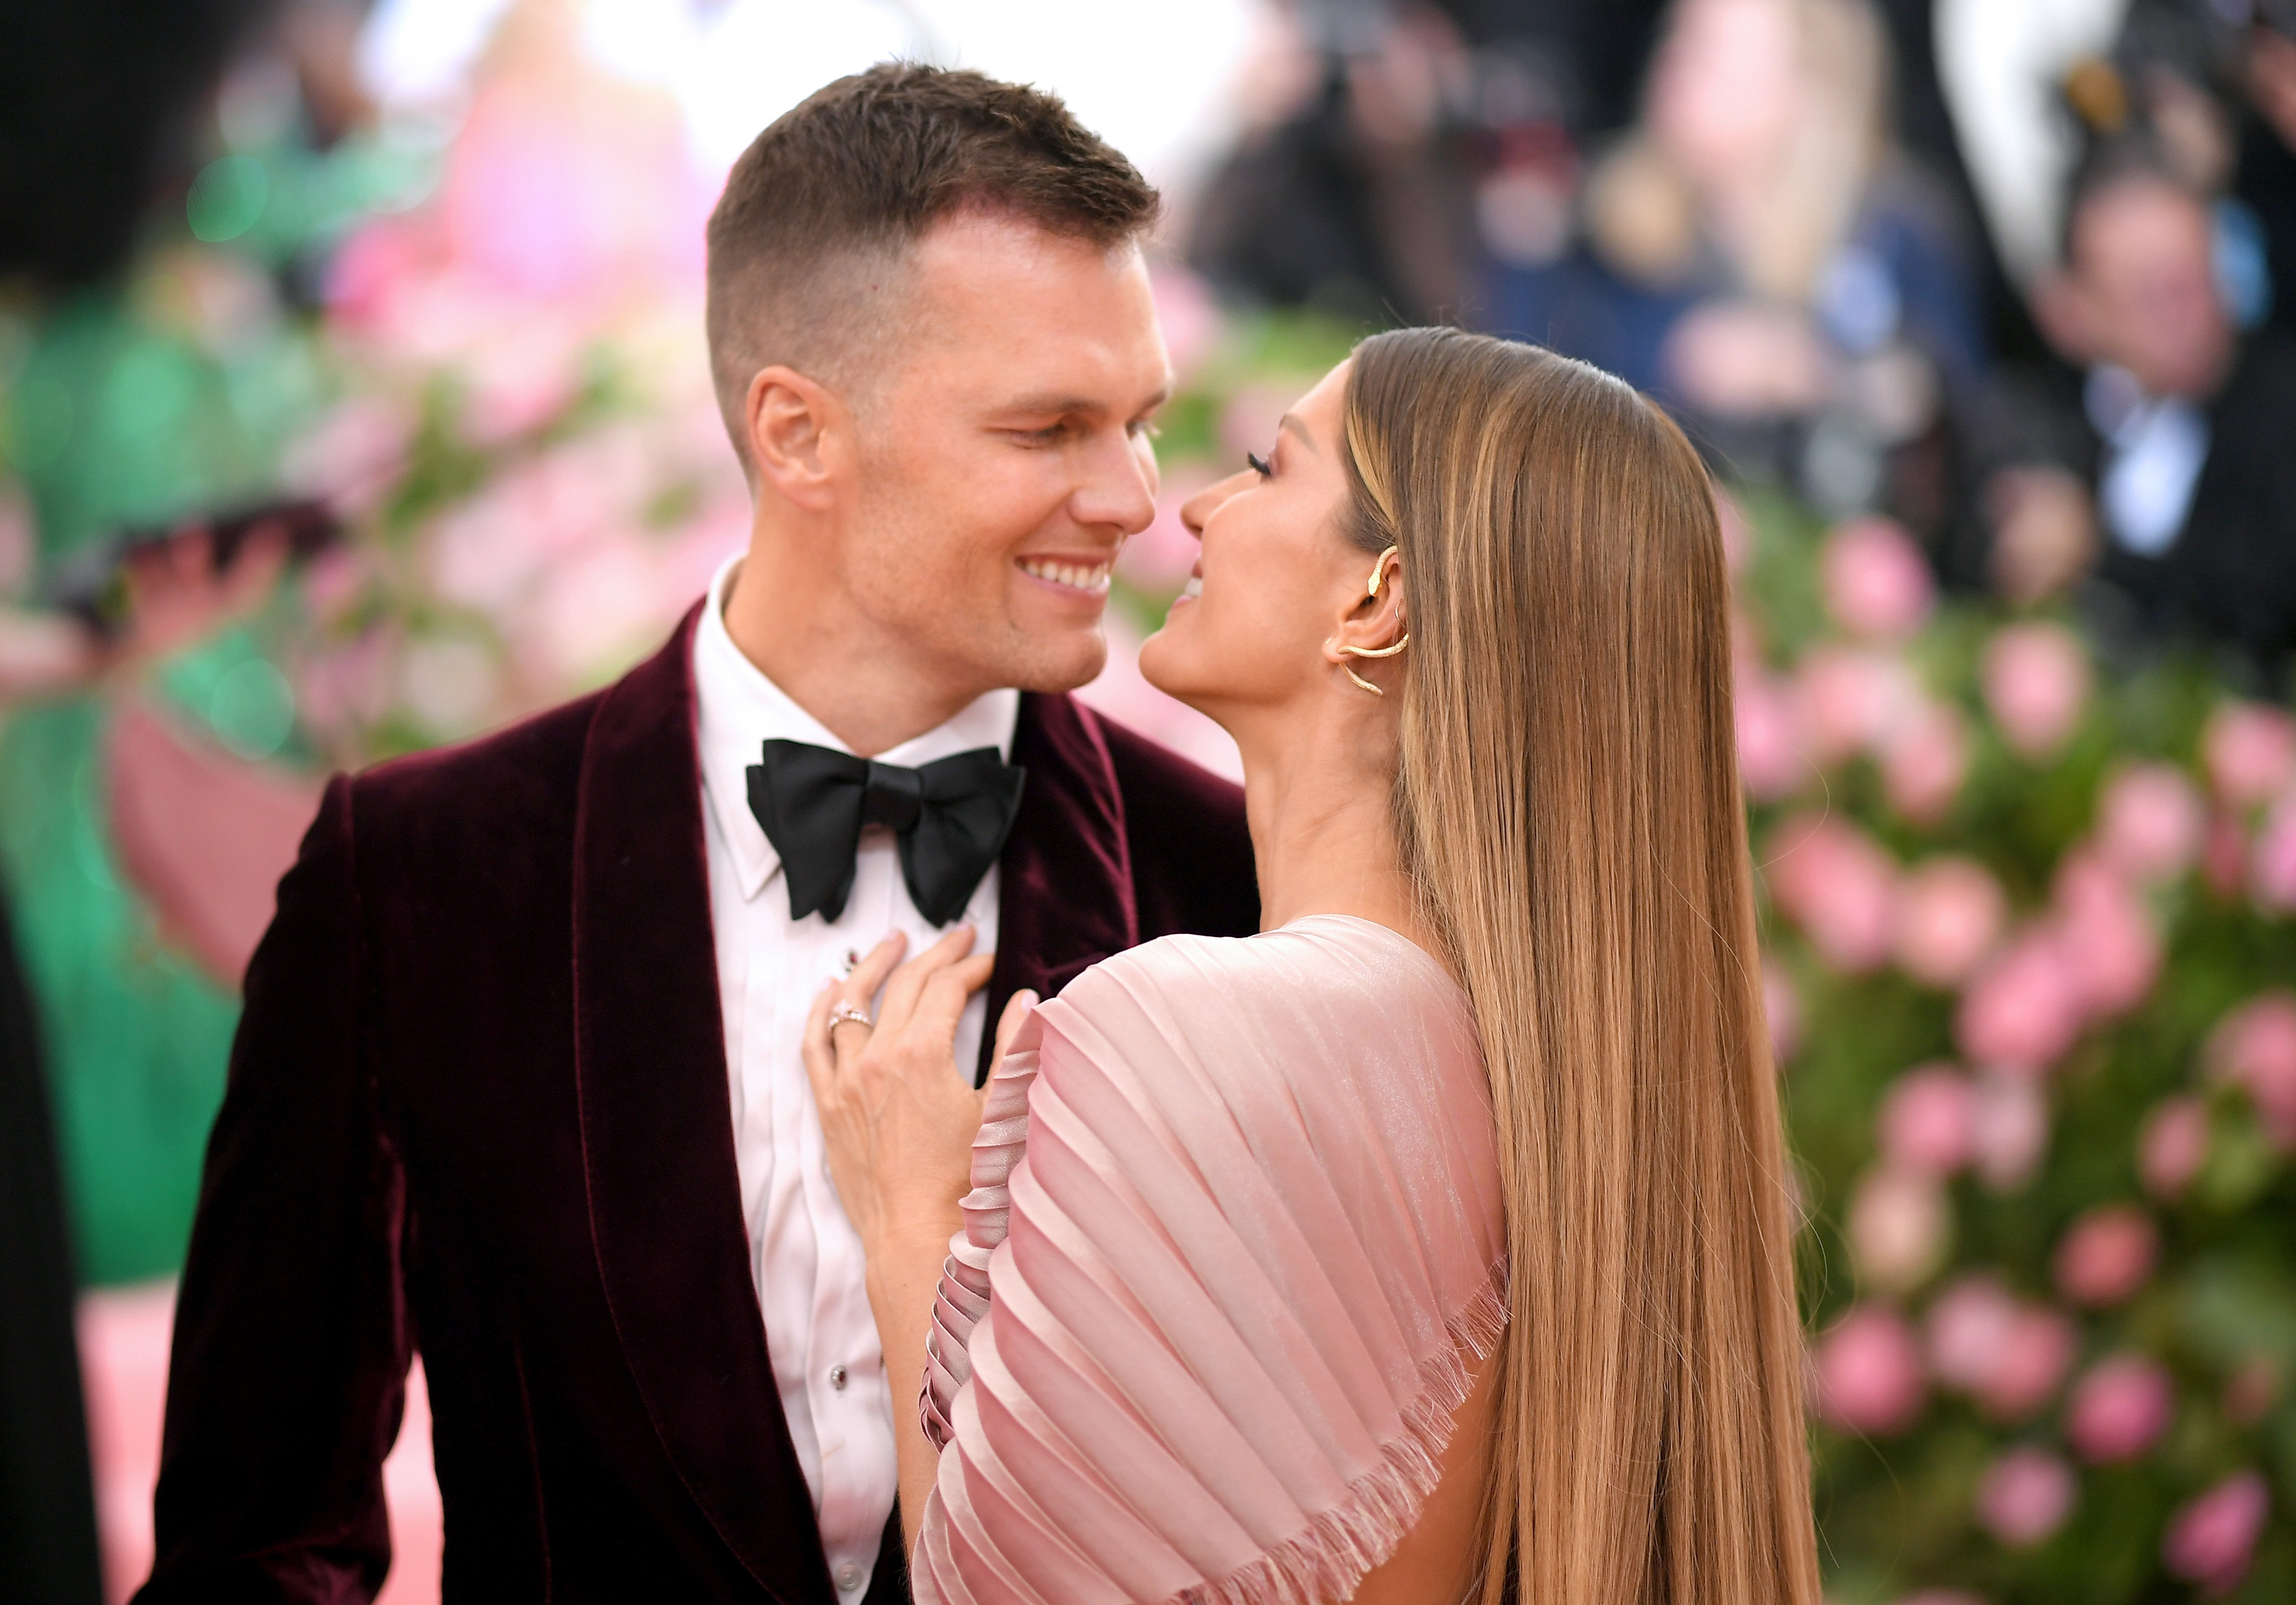 Tom Brady and his wife Gisele Bundchen attend the 2019 Met Gala | Photo: Getty Images